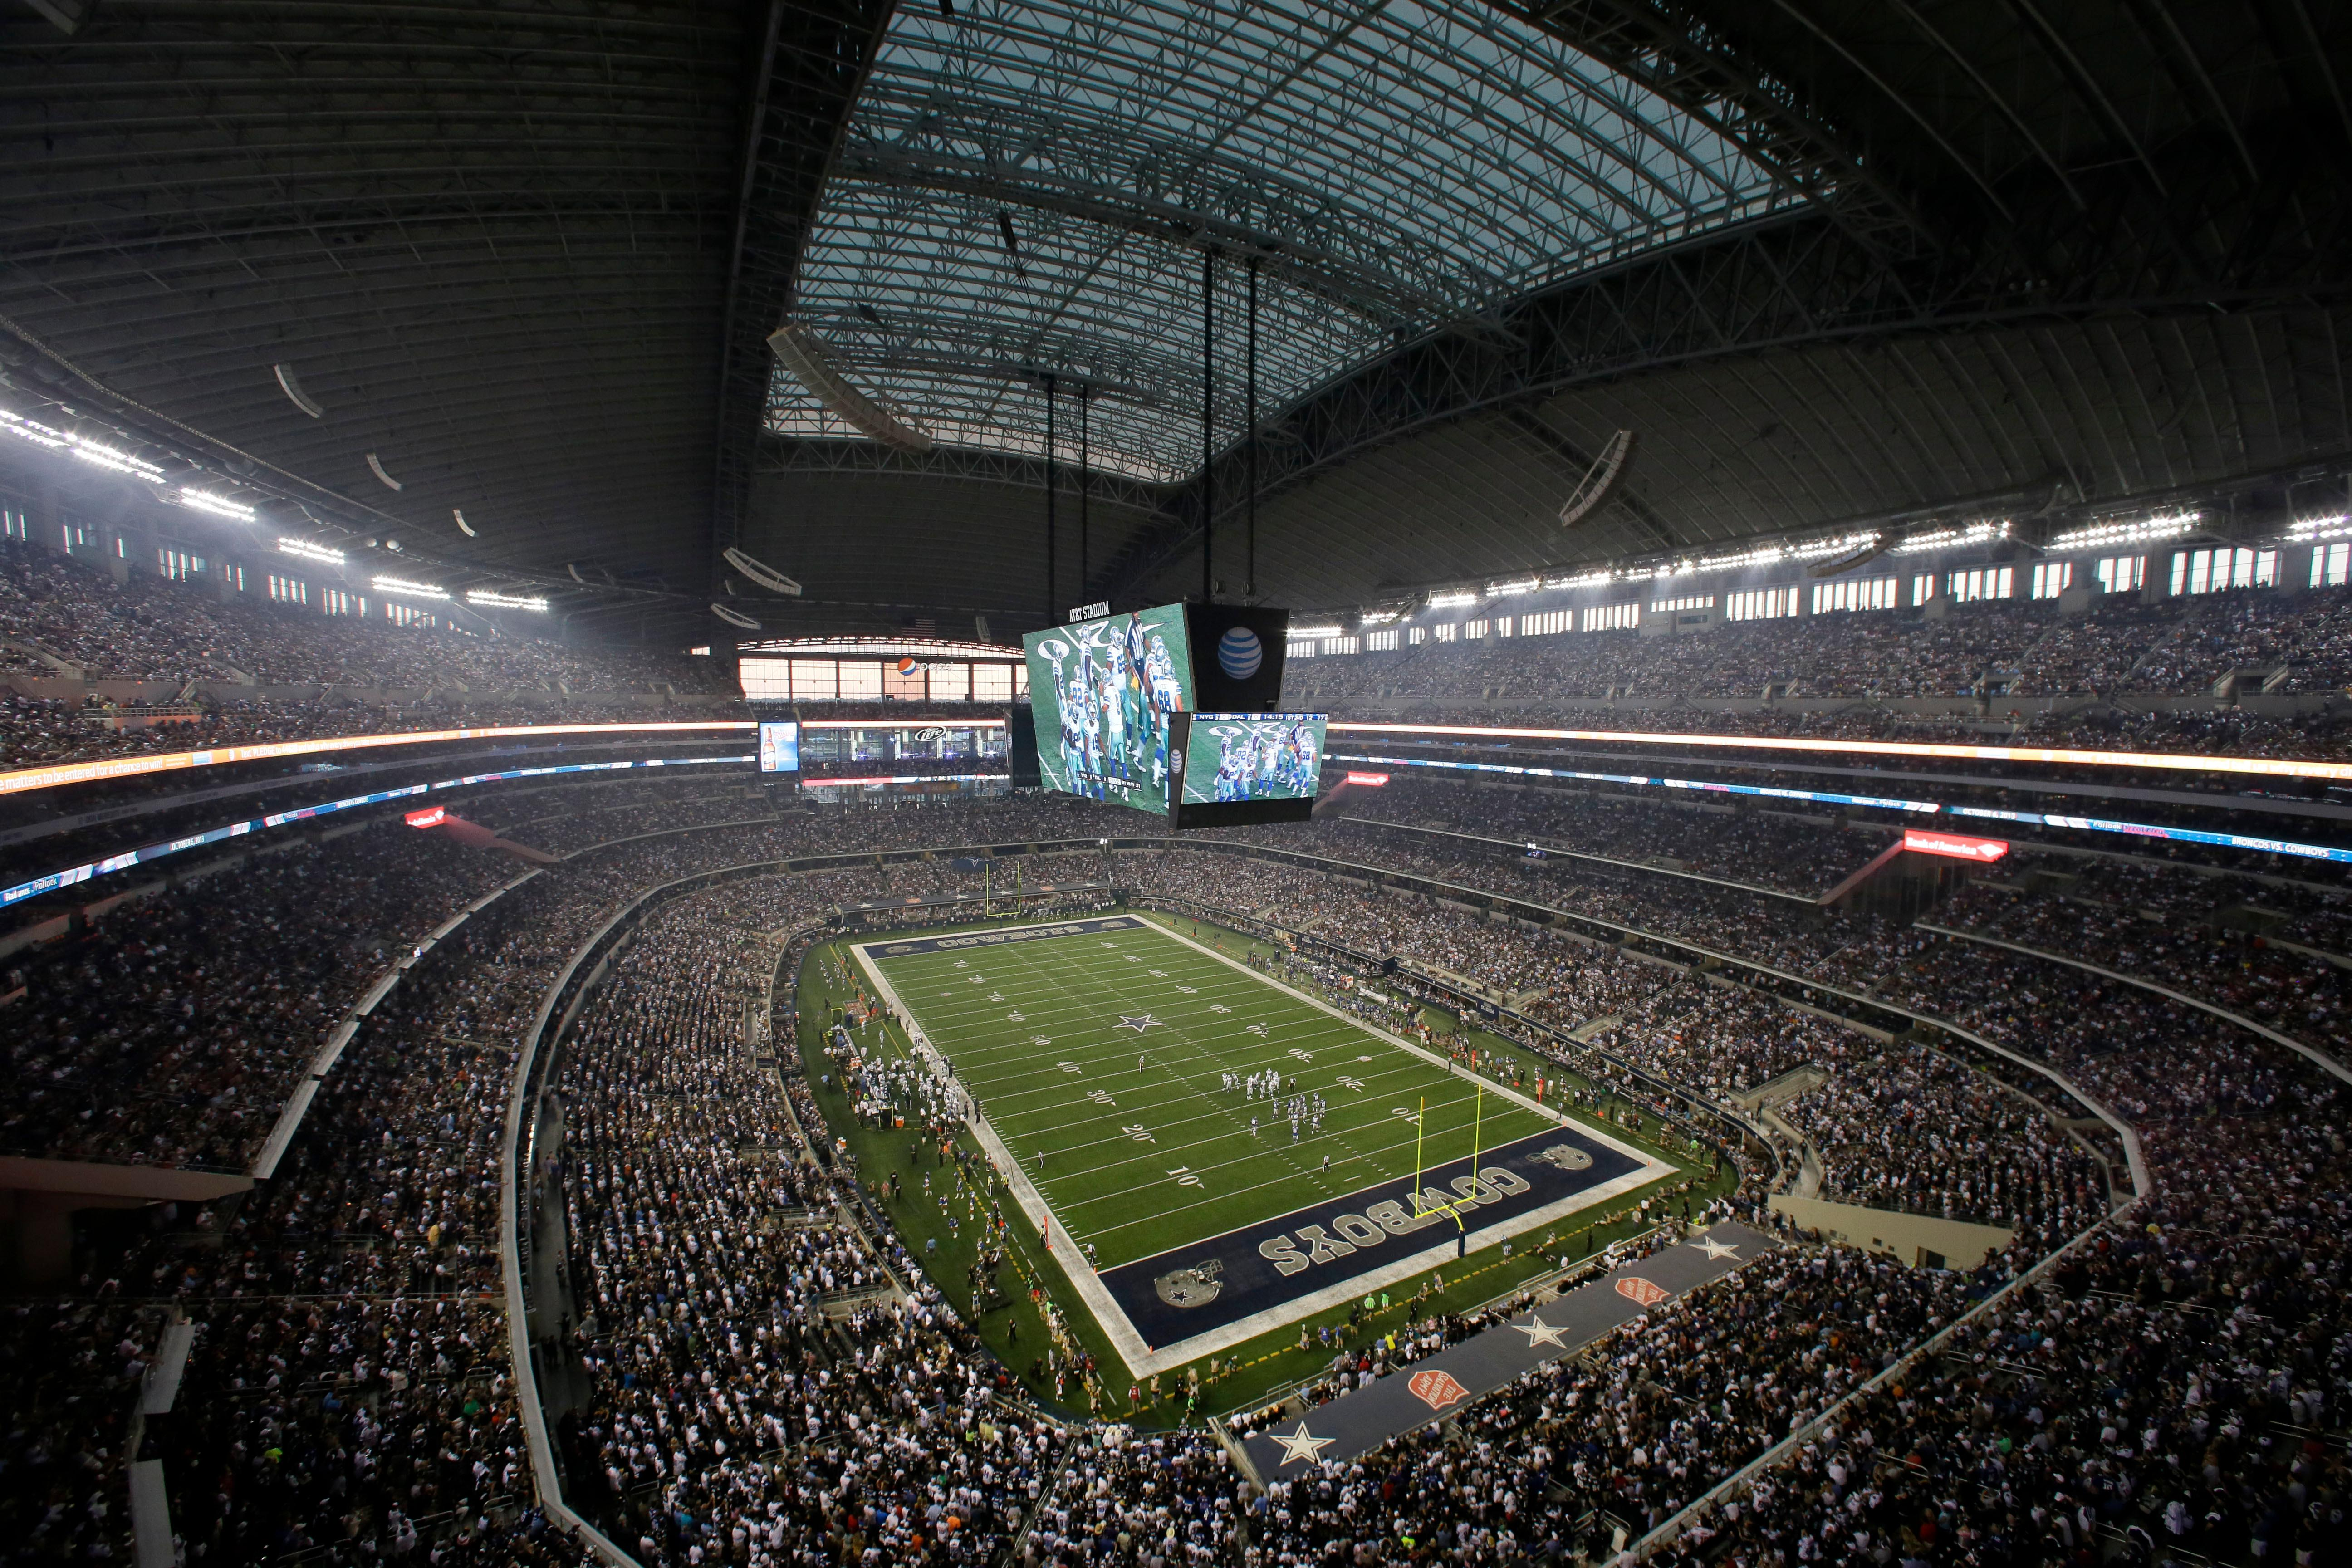 FILE - In this Sept. 8, 2013, file photo, fans watch at the start of an NFL football game between the New York Giants and Dallas Cowboys, in Arlington, Texas. (AP Photo/Tony Gutierrez, File)